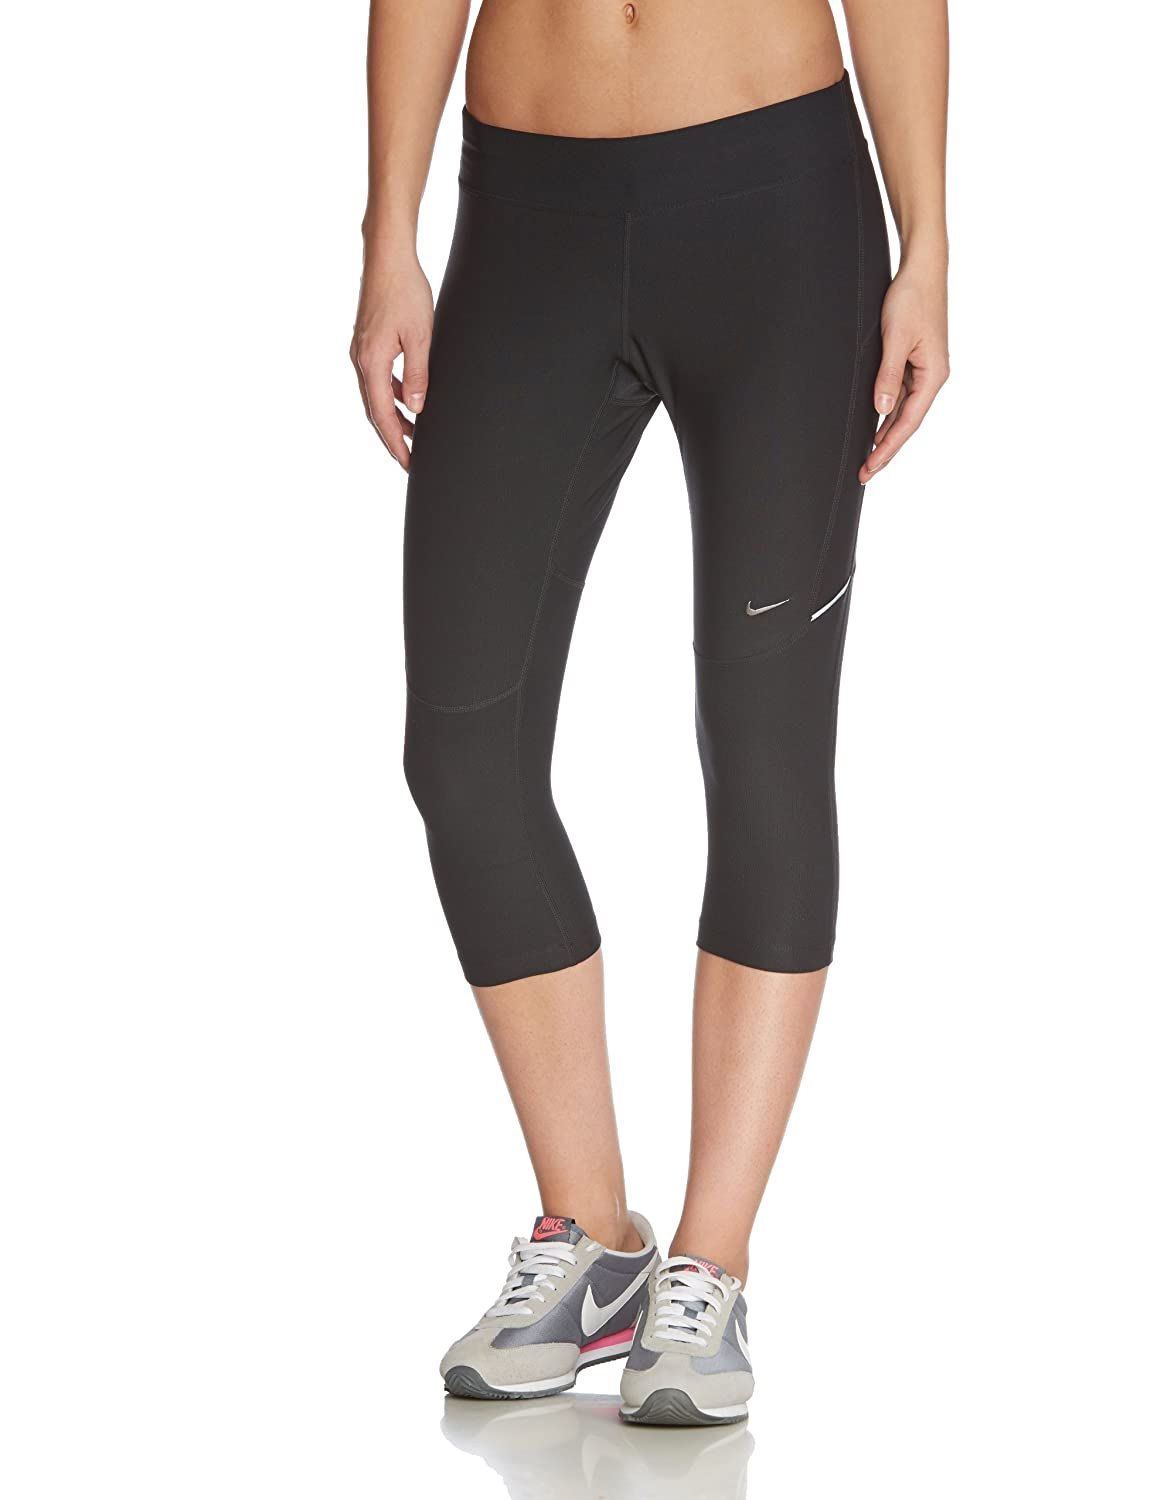 Perfect Womens Nike&174 Gym Basic Capris Workout Pants With A Flattering Fit! Slip This Pair Of Capris On Before You Head Off To The Gym For A Workoutready Feel The Durable Spandex Material Offers Plenty Of Flexibility So You Can Wear These For Years